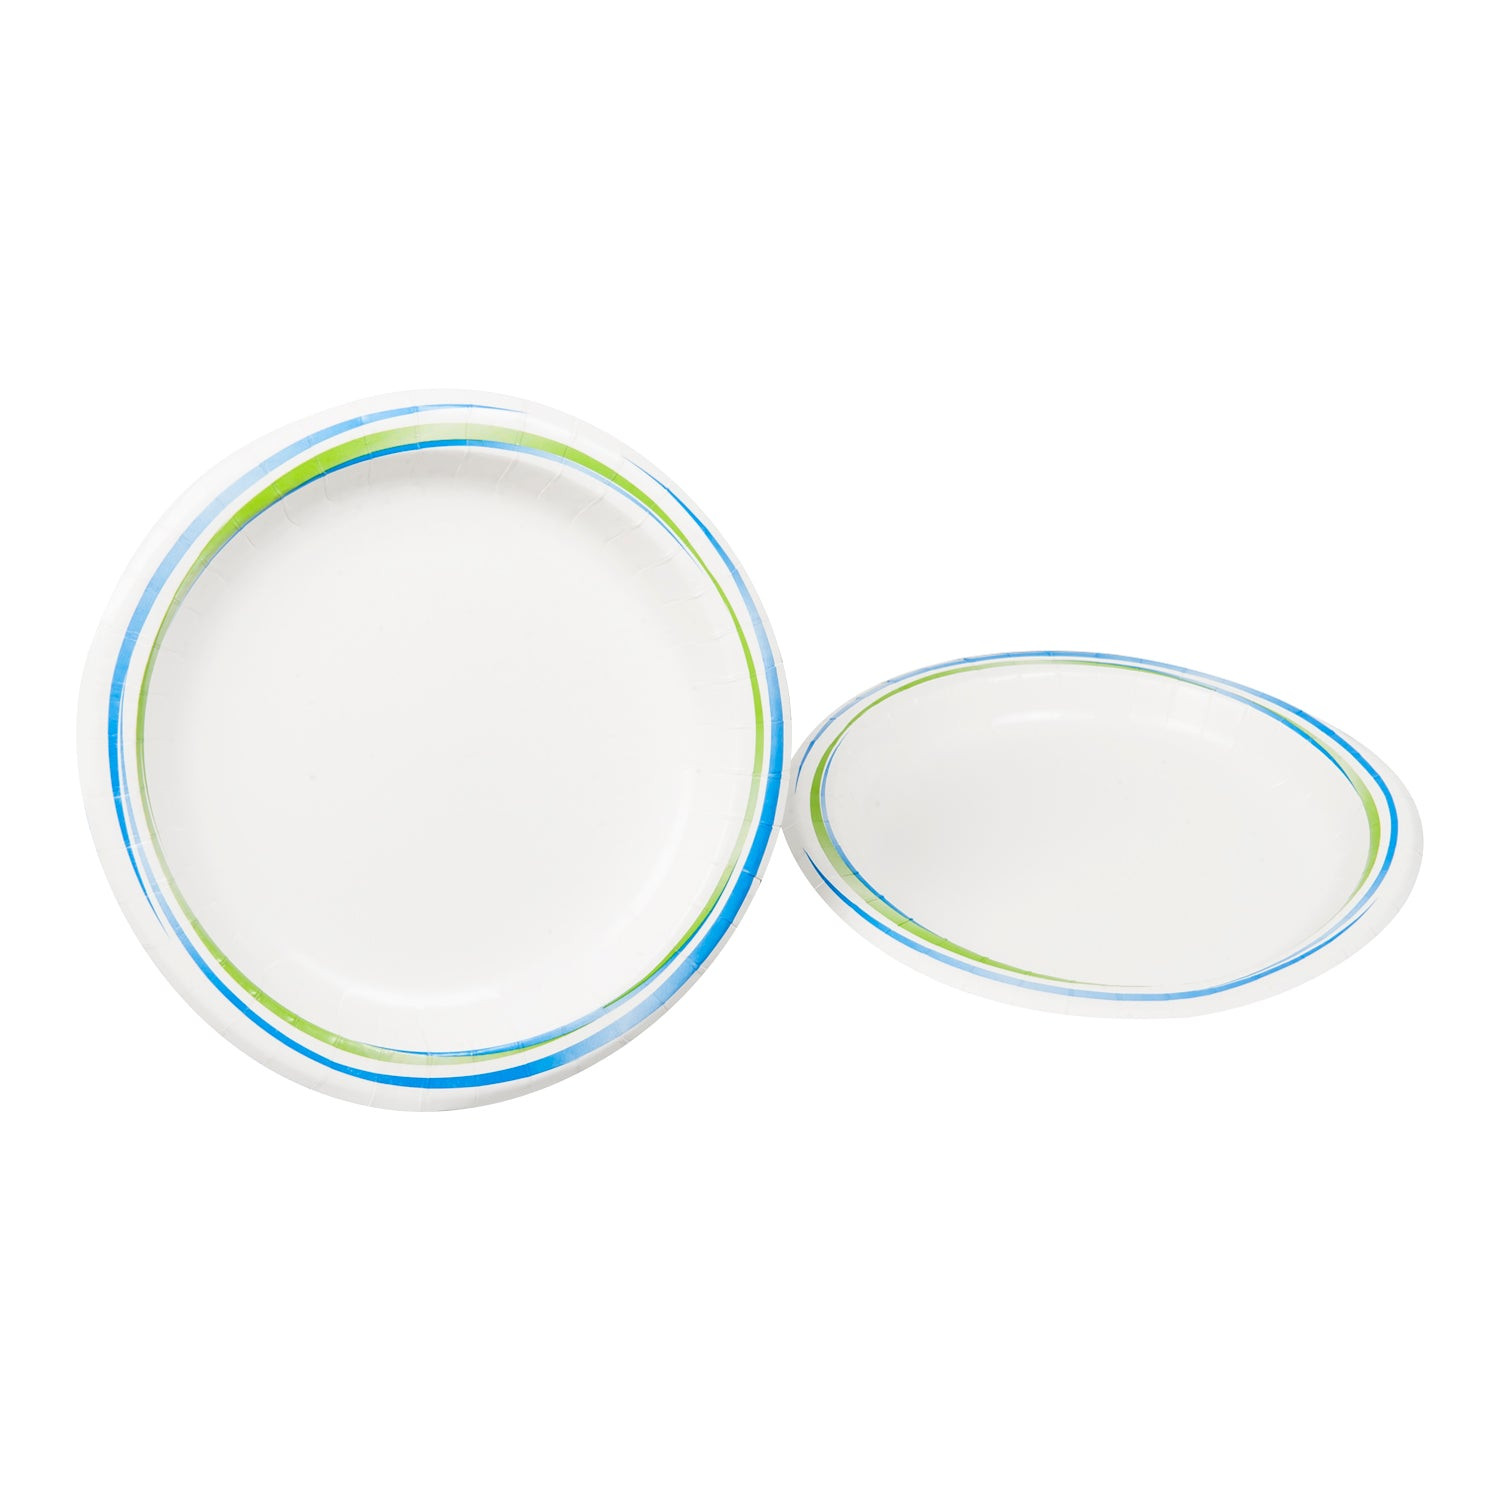 "Sysco Trendz Heavy Weight Paper Plate 8.5"" Canadian - 500 Pack [$0.08/each]"